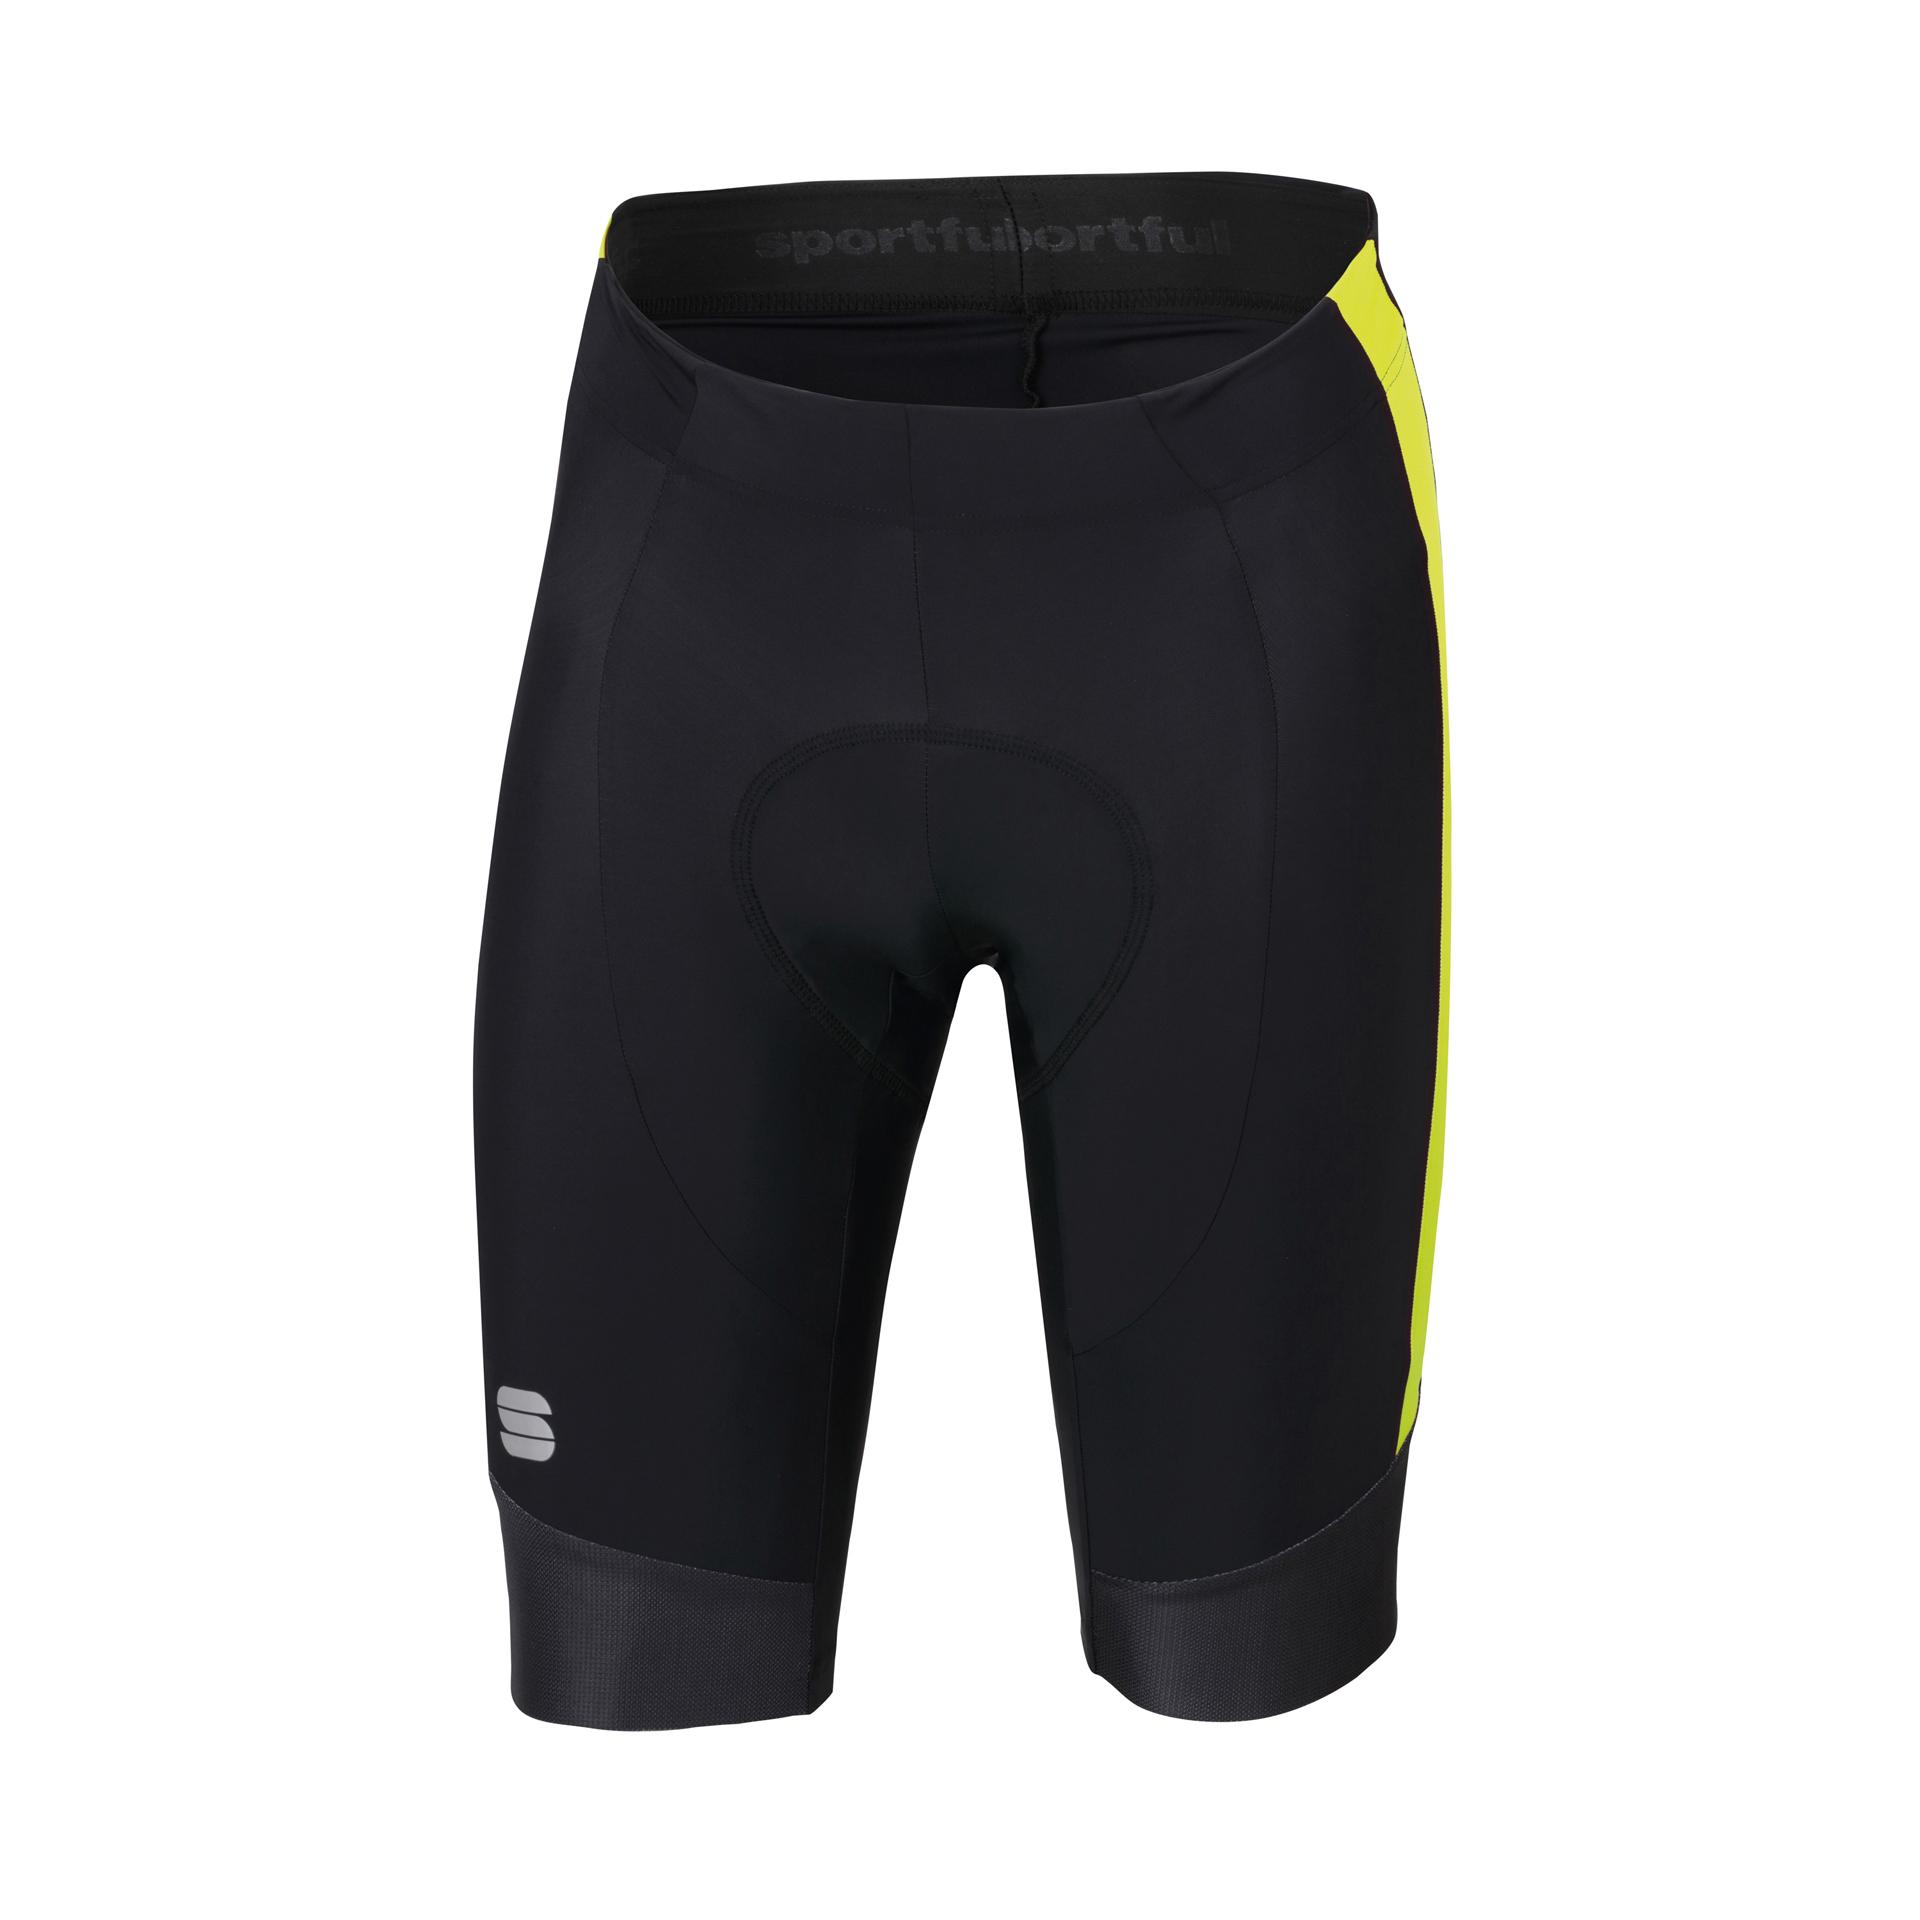 Sportful Fietsbroek zonder bretels Heren Zwart  / SF Gts Short-Black